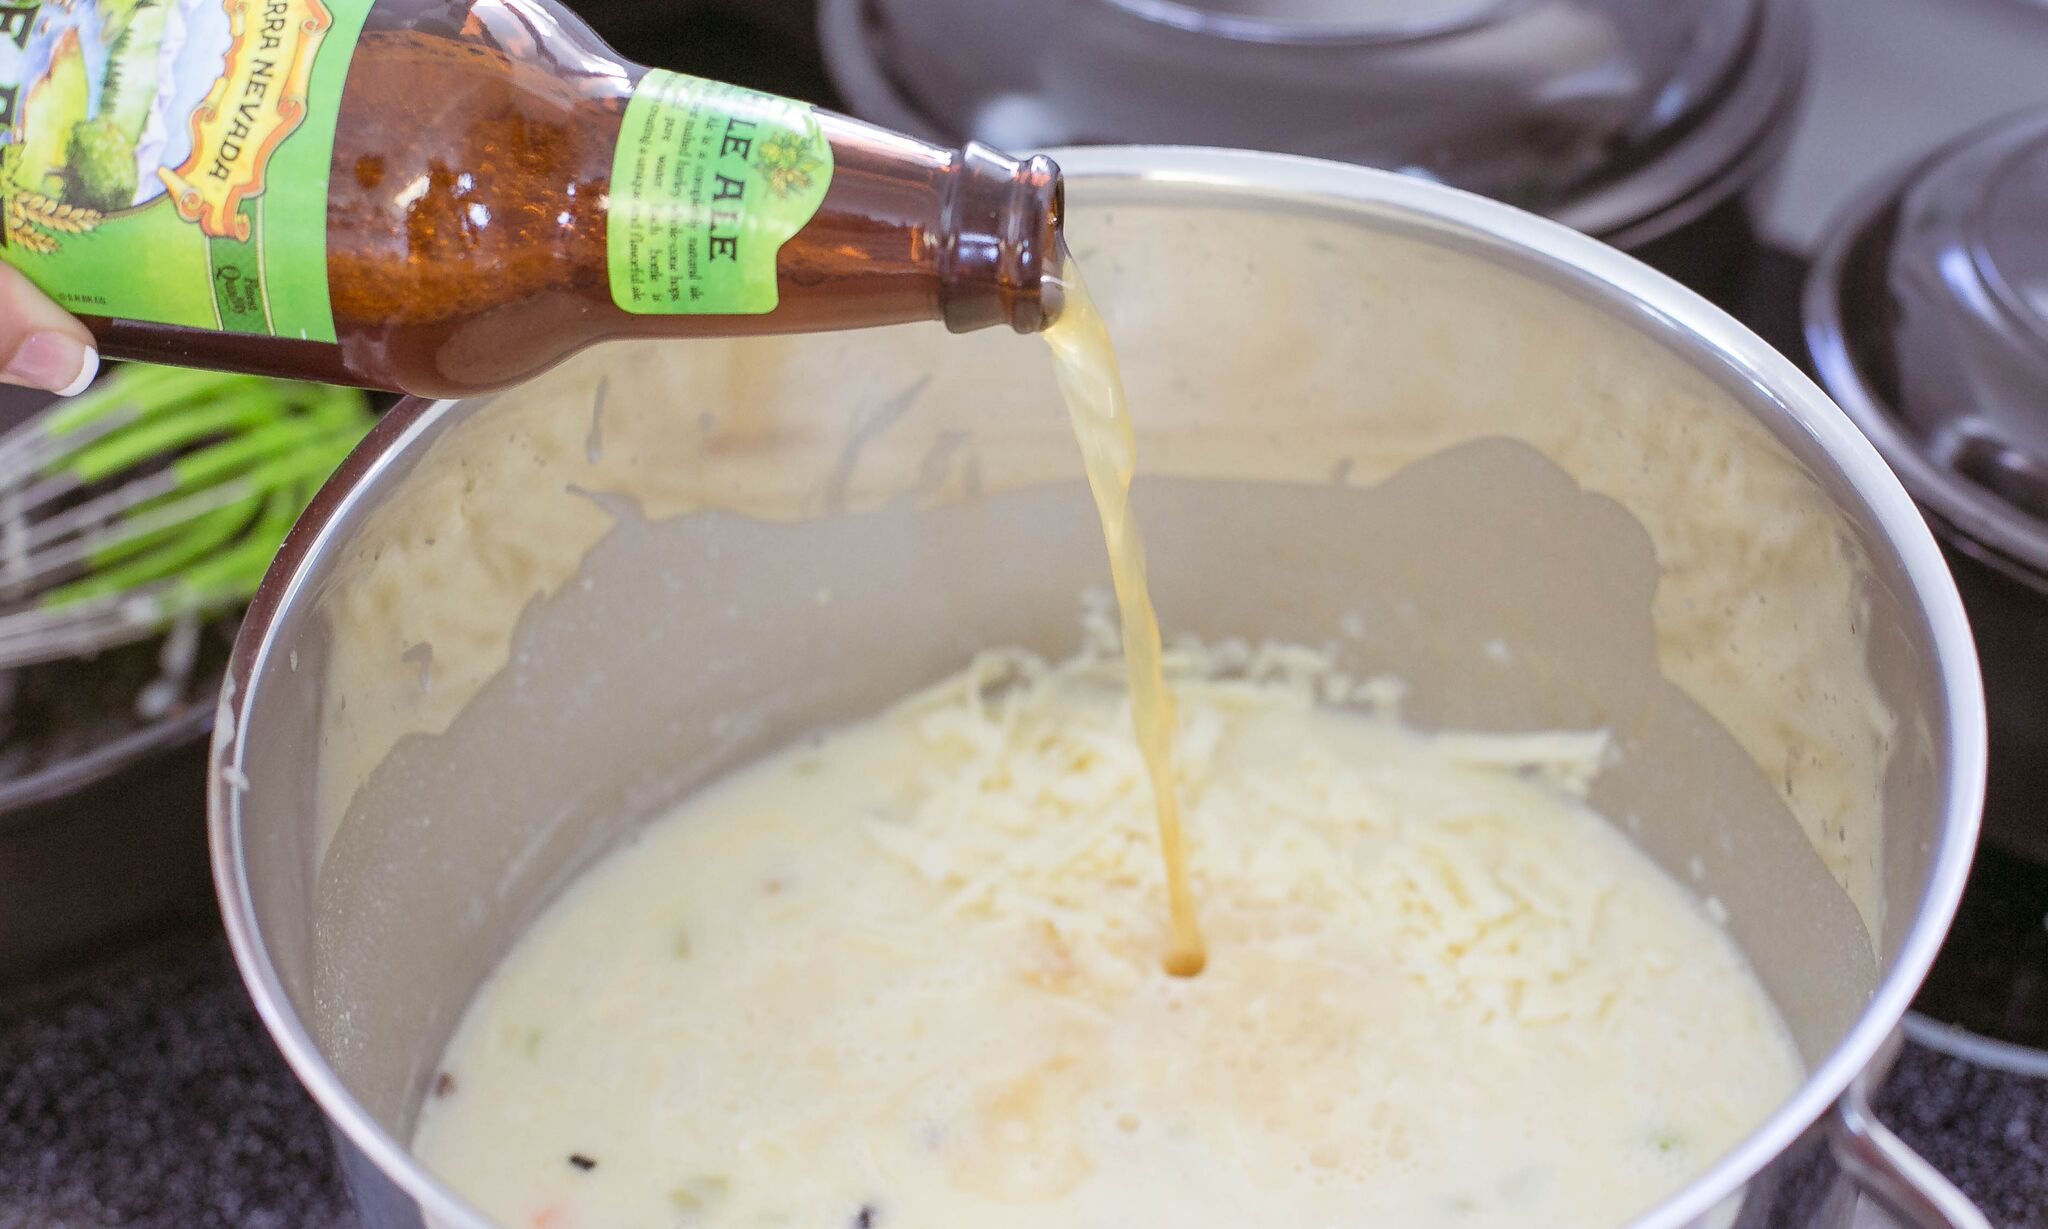 Add the shredded cheddar and beer to pot.